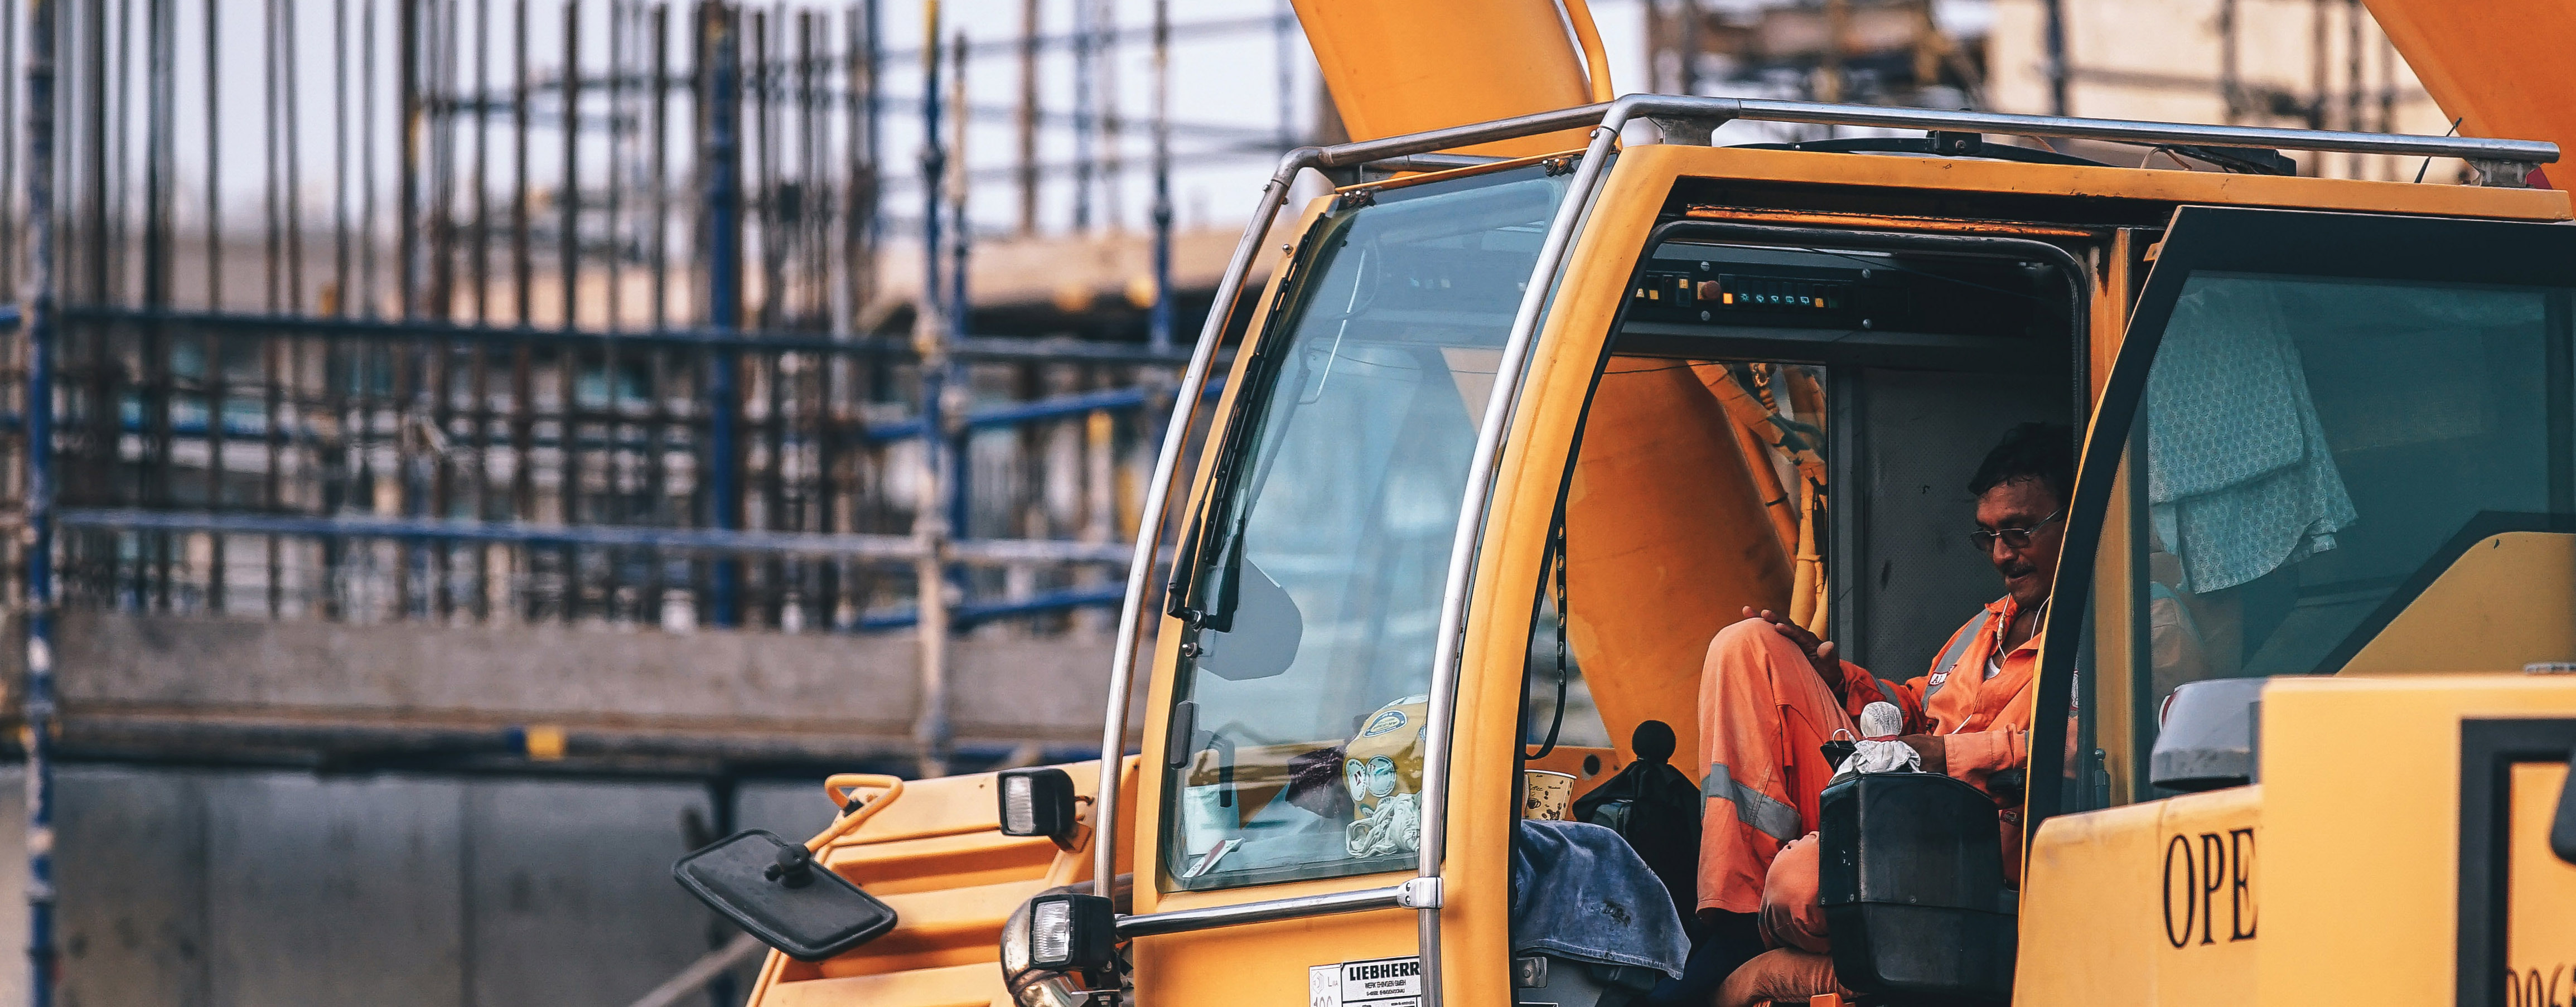 Construction Equipment Best Practices